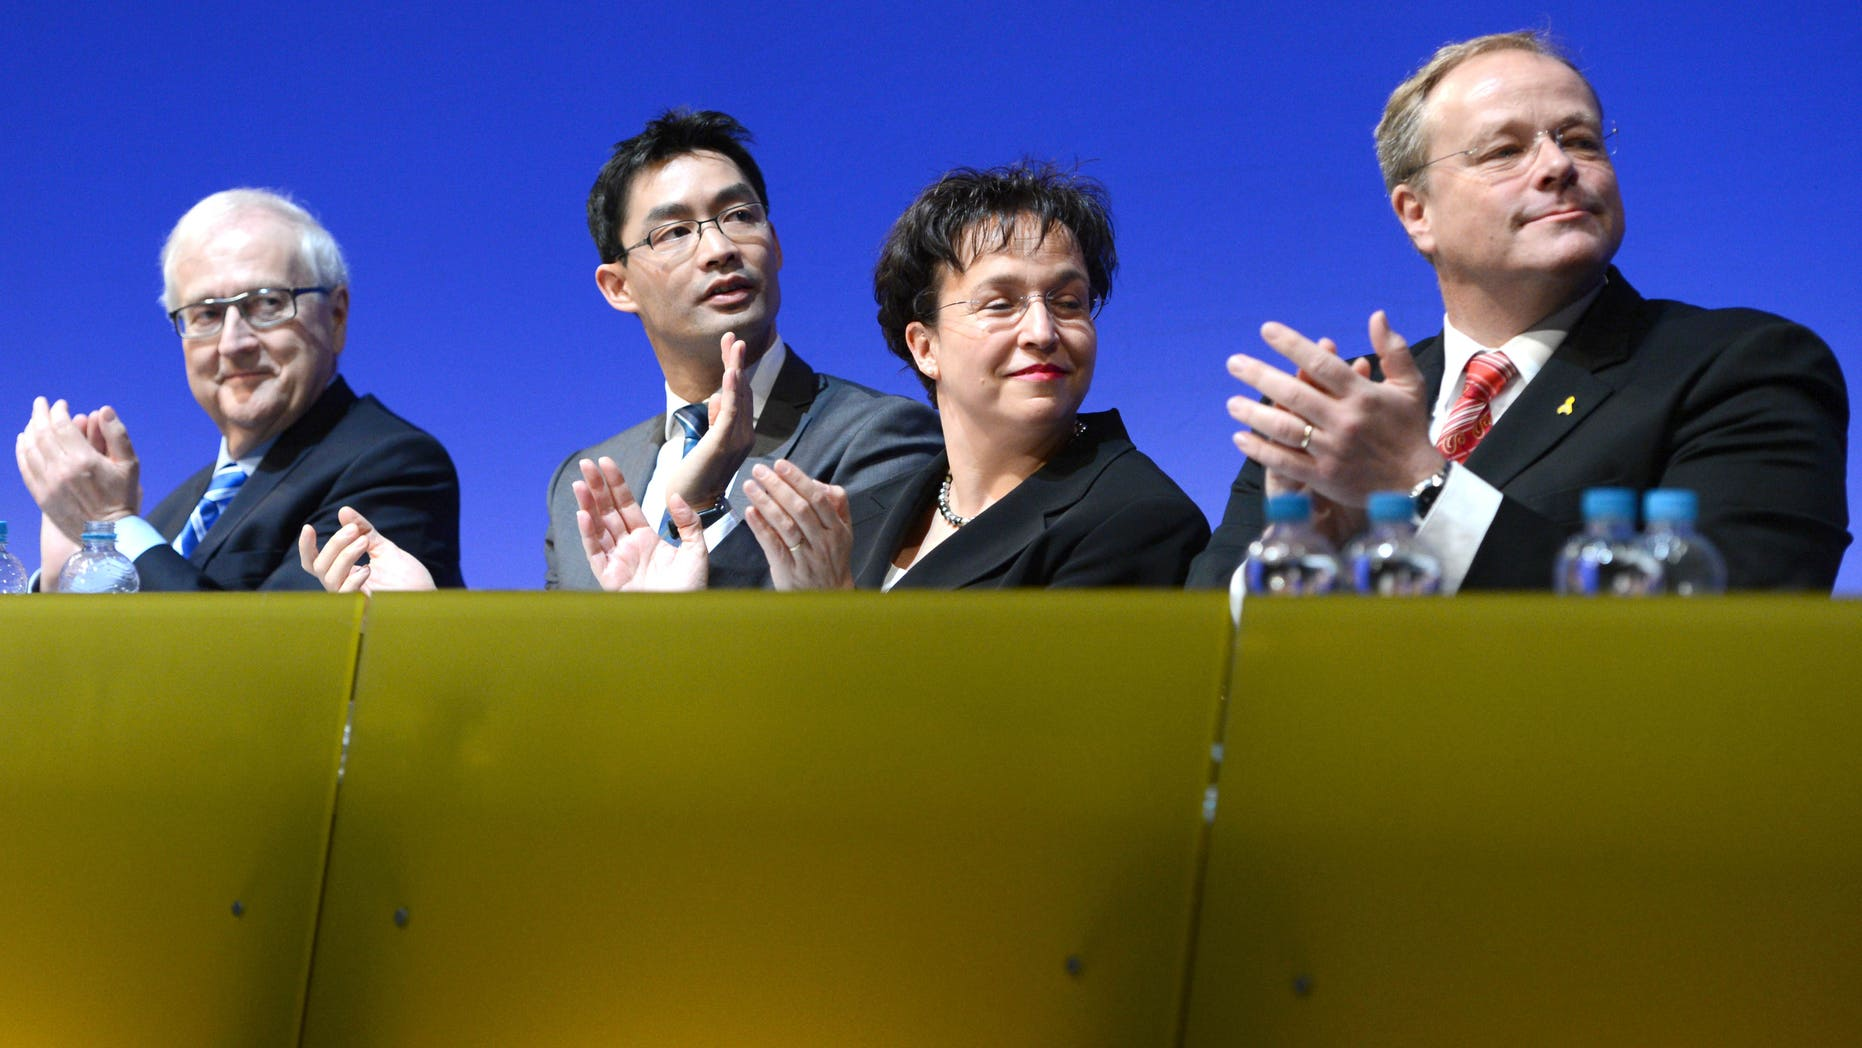 From left: Free Democratic Party (FDP) faction leader Rainer  Bruederle.  German economy minister, vice-chancellor and party chairman,  Philipp Roesler, vice-chairwoman of the party, Birgit Homburger and development minister Dirk Niebel attend a meeting of the FDP in Stuttgart, southern Germany, Sunday, Jan. 6, 2013. Germany's embattled vice chancellor is battling to quell speculation about his leadership of the country's junior governing party, whose dire poll ratings are a complicating factor in Chancellor Angela Merkel's bid for re-election.  Philipp Roesler, who's also Germany's economy minister, appealed to his pro-market Free Democratic Party on Sunday to show unity ahead of a state election in his home region of Lower Saxony on Jan. 20, an important political test ahead of national elections in September.  (AP Photo/dpa/ Bernd Weißbrod)